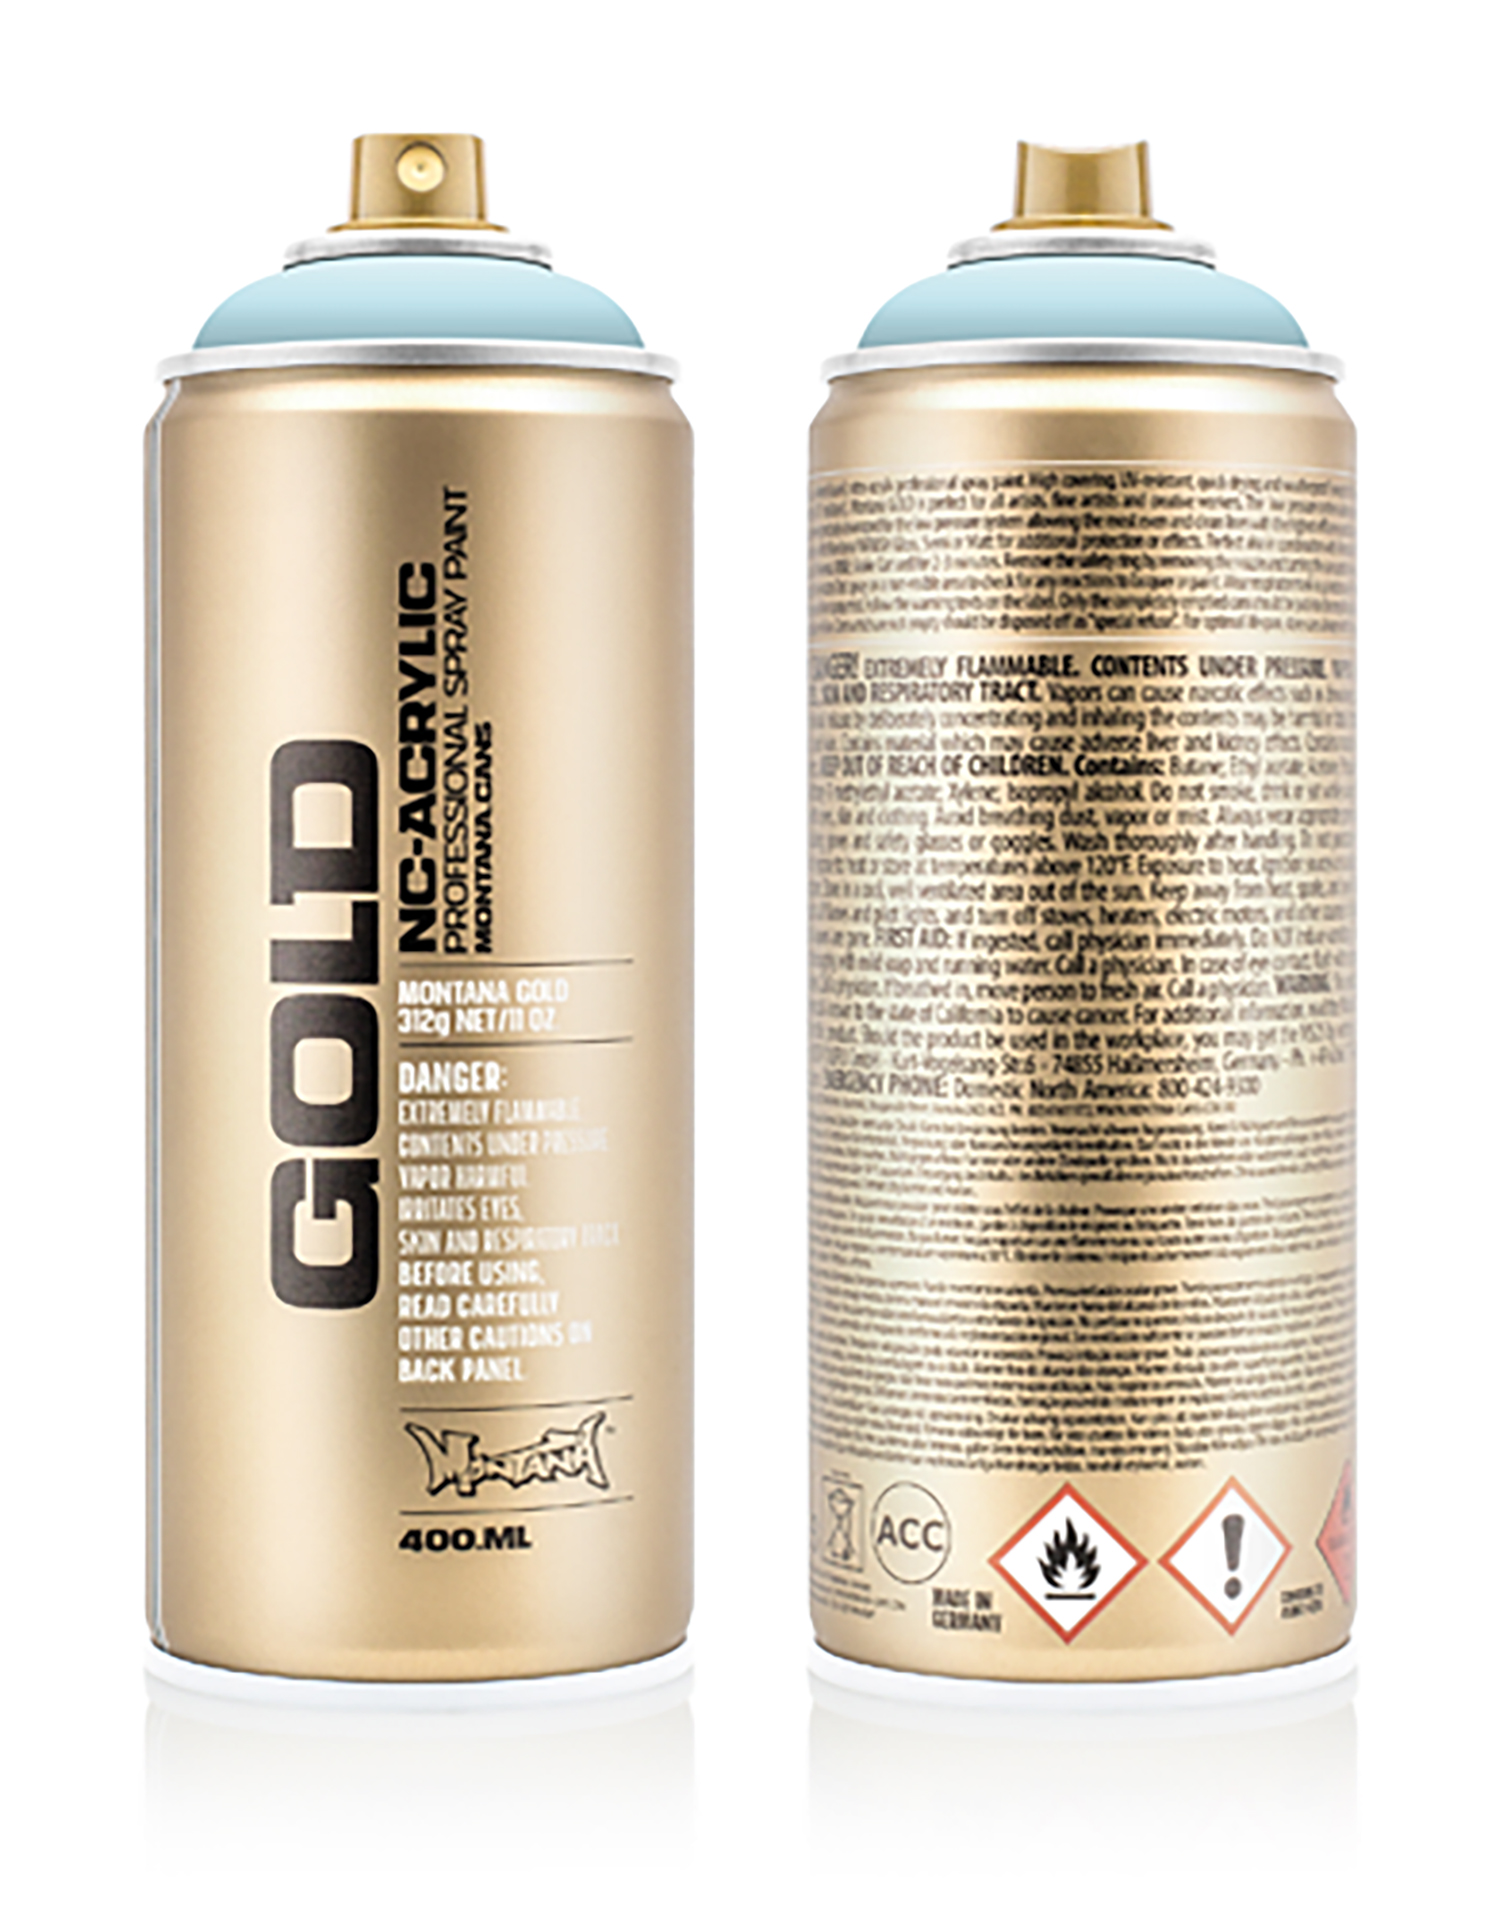 MONTANA-GOLD-SPRAY-400ML-G-5105